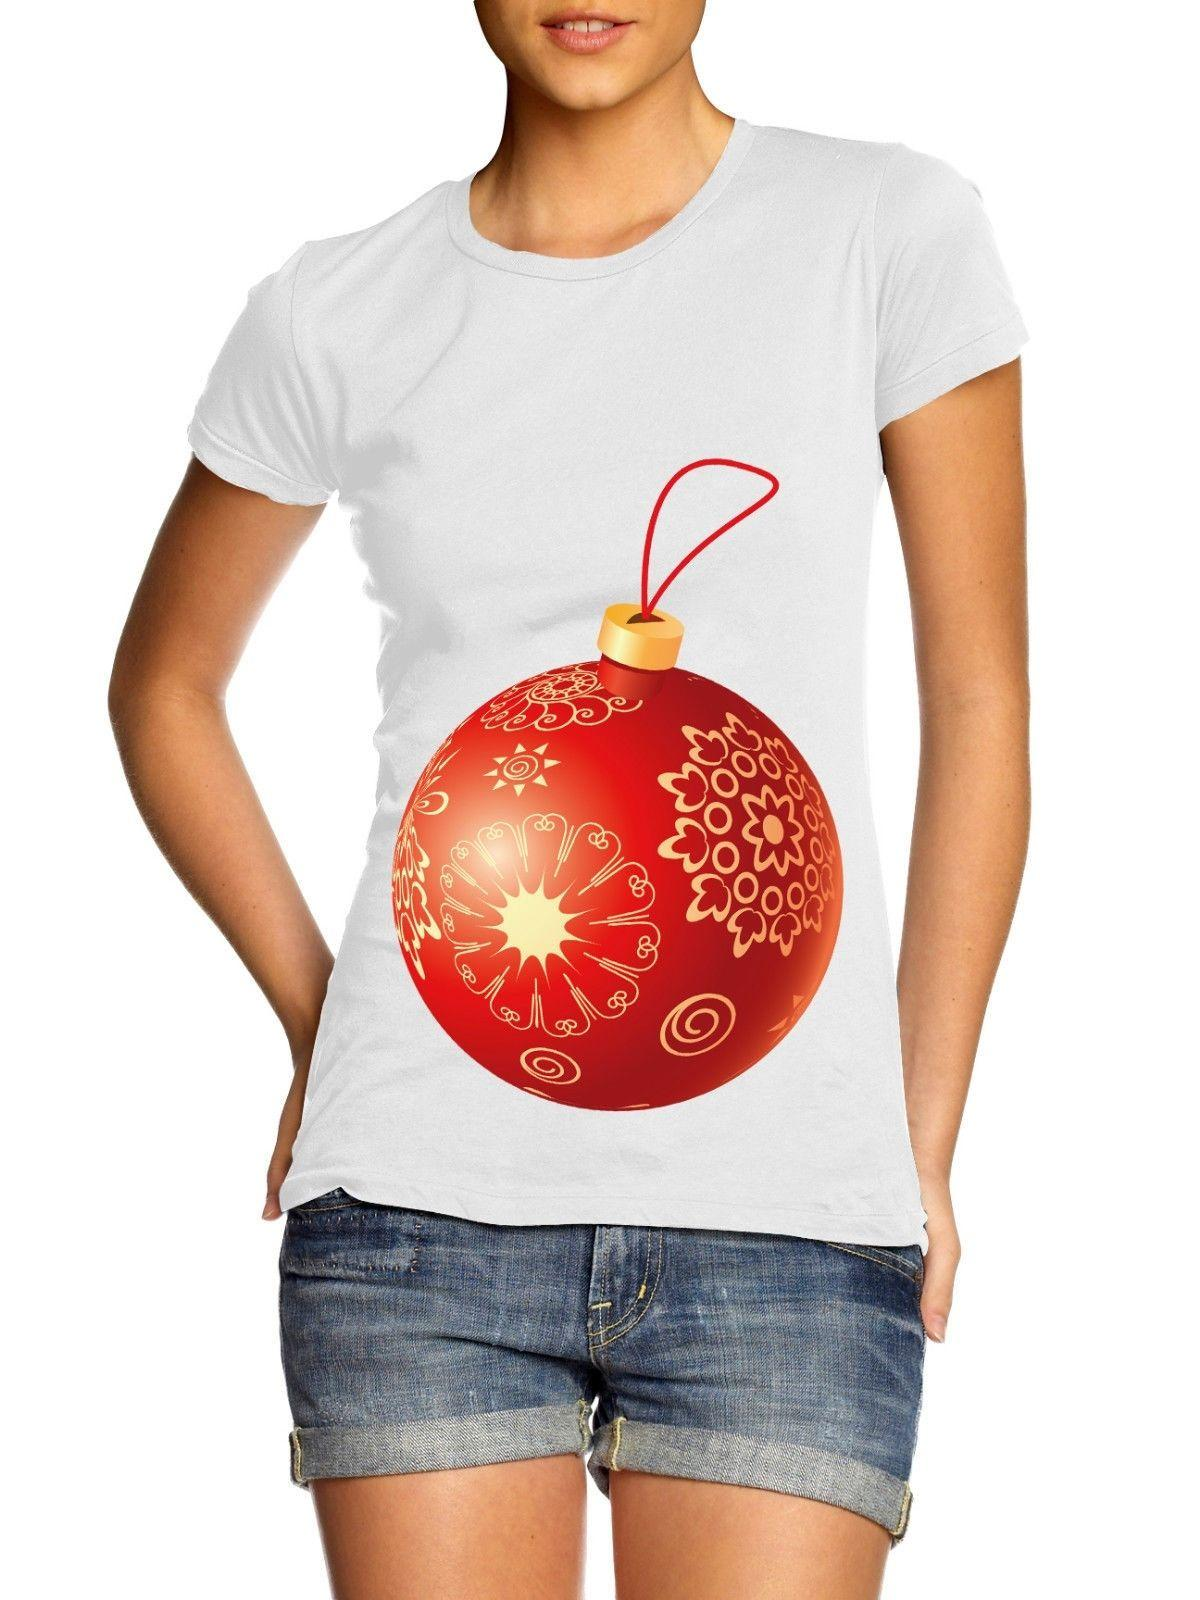 pregnant bauble ladies womens t shirt christmas maternity novelty funny present cool casual pride t awesome t shirts cotton shirts from cls6688524 - Christmas Maternity